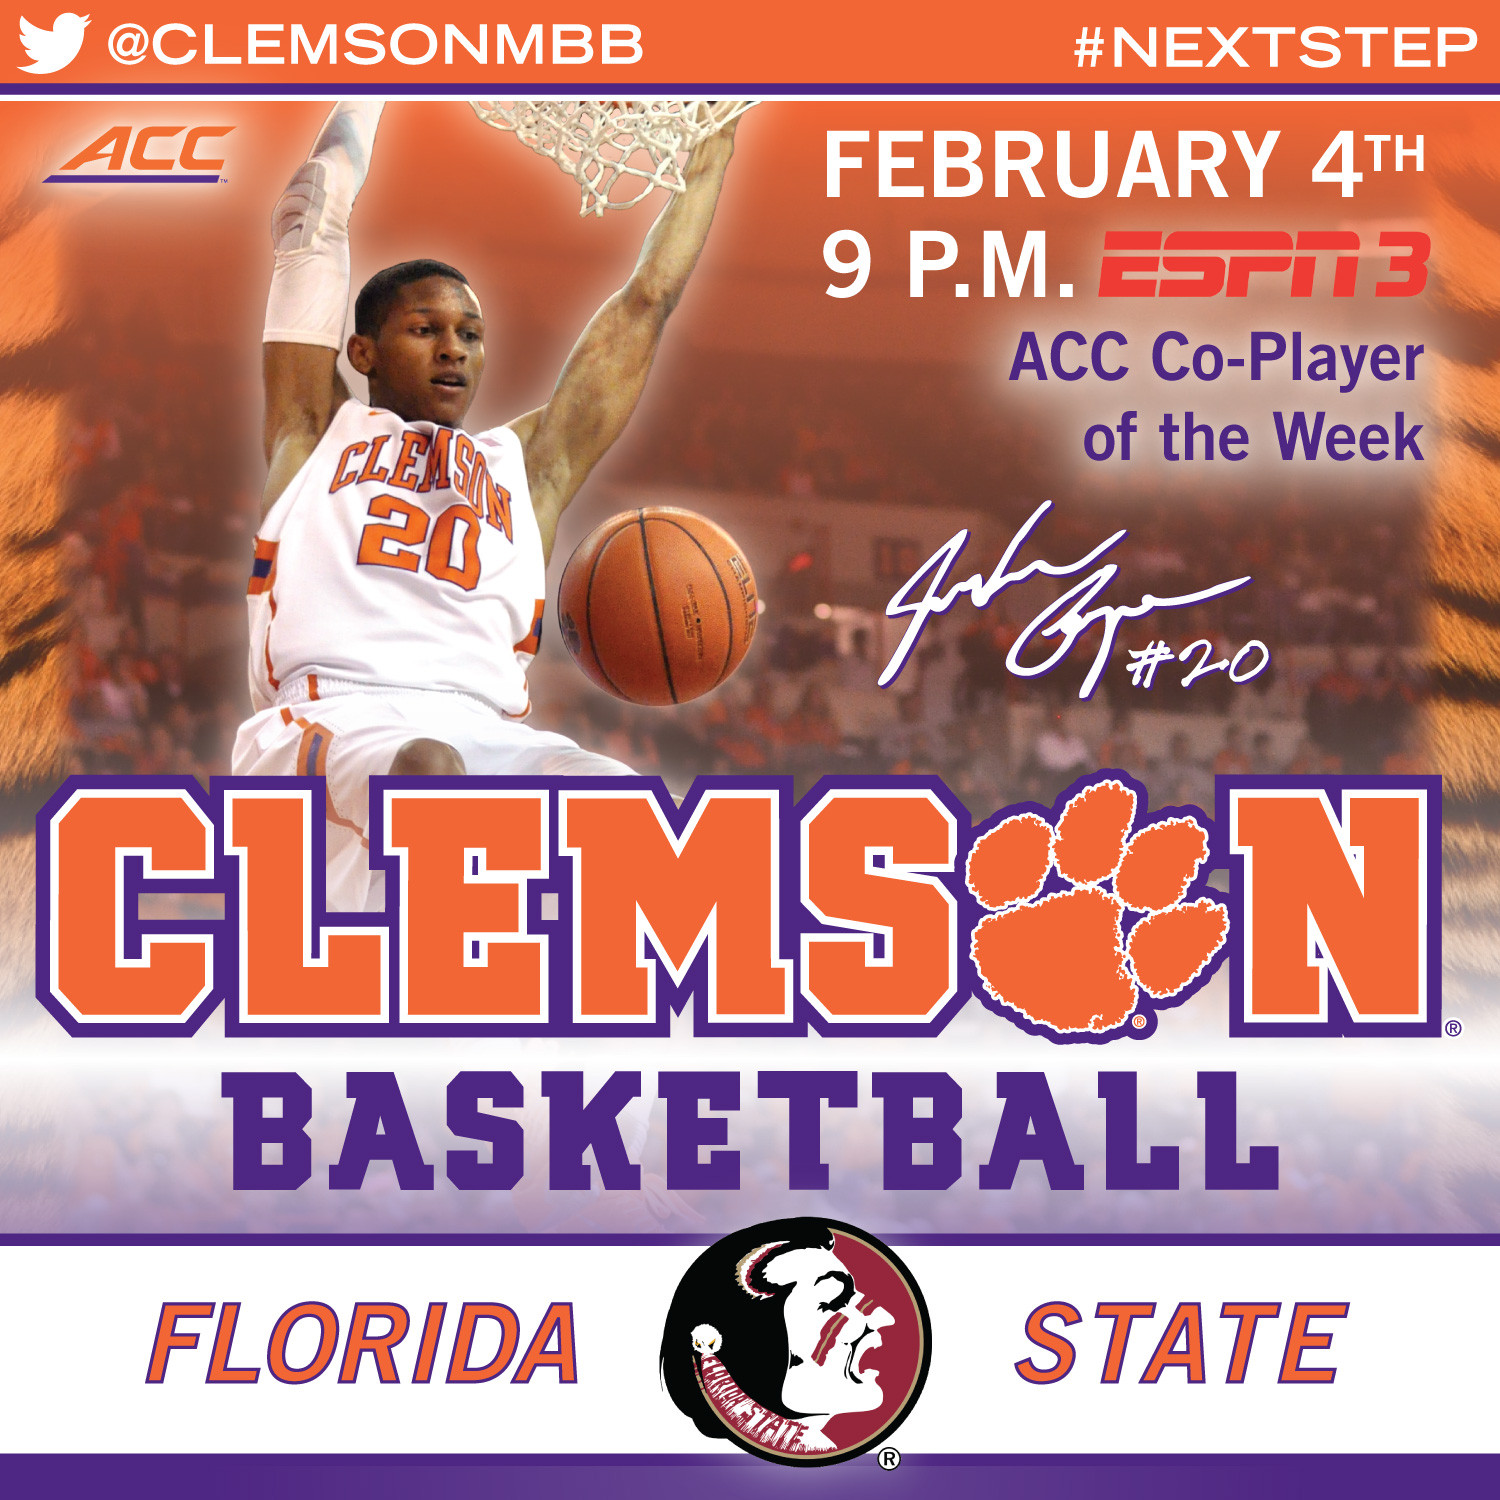 Tigers Travel to Florida State